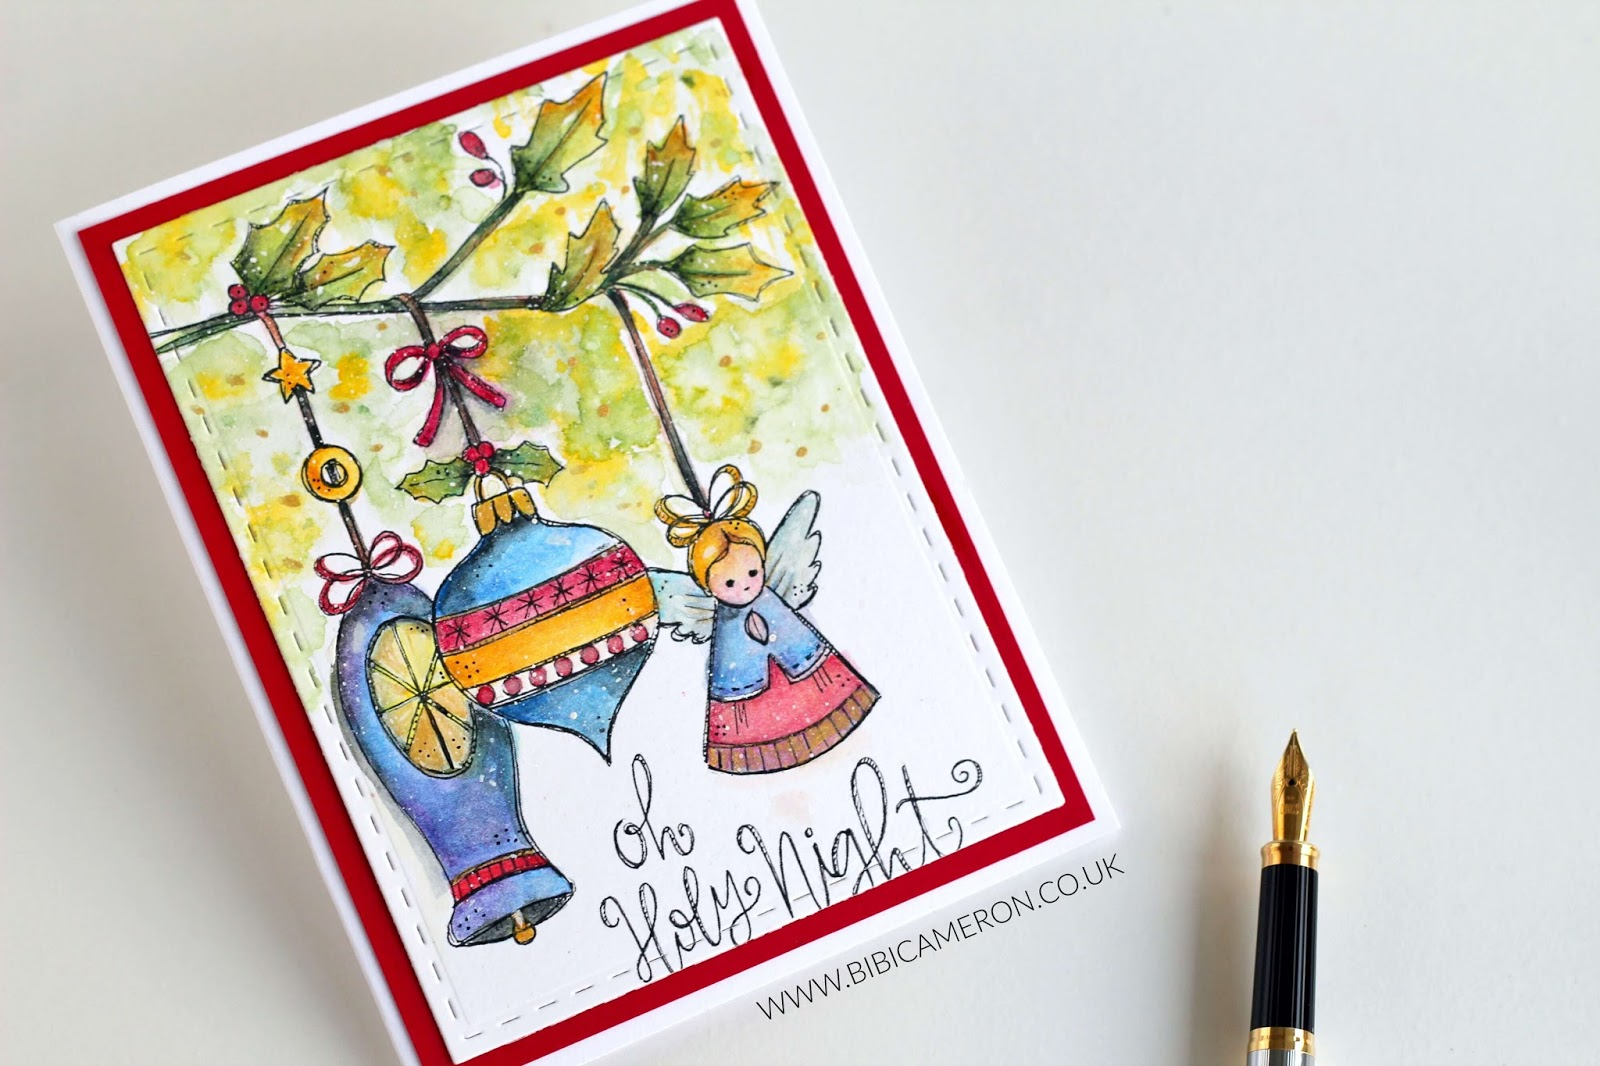 Suzy S Classical Christmas Watercolor Prints Ssscyberweek